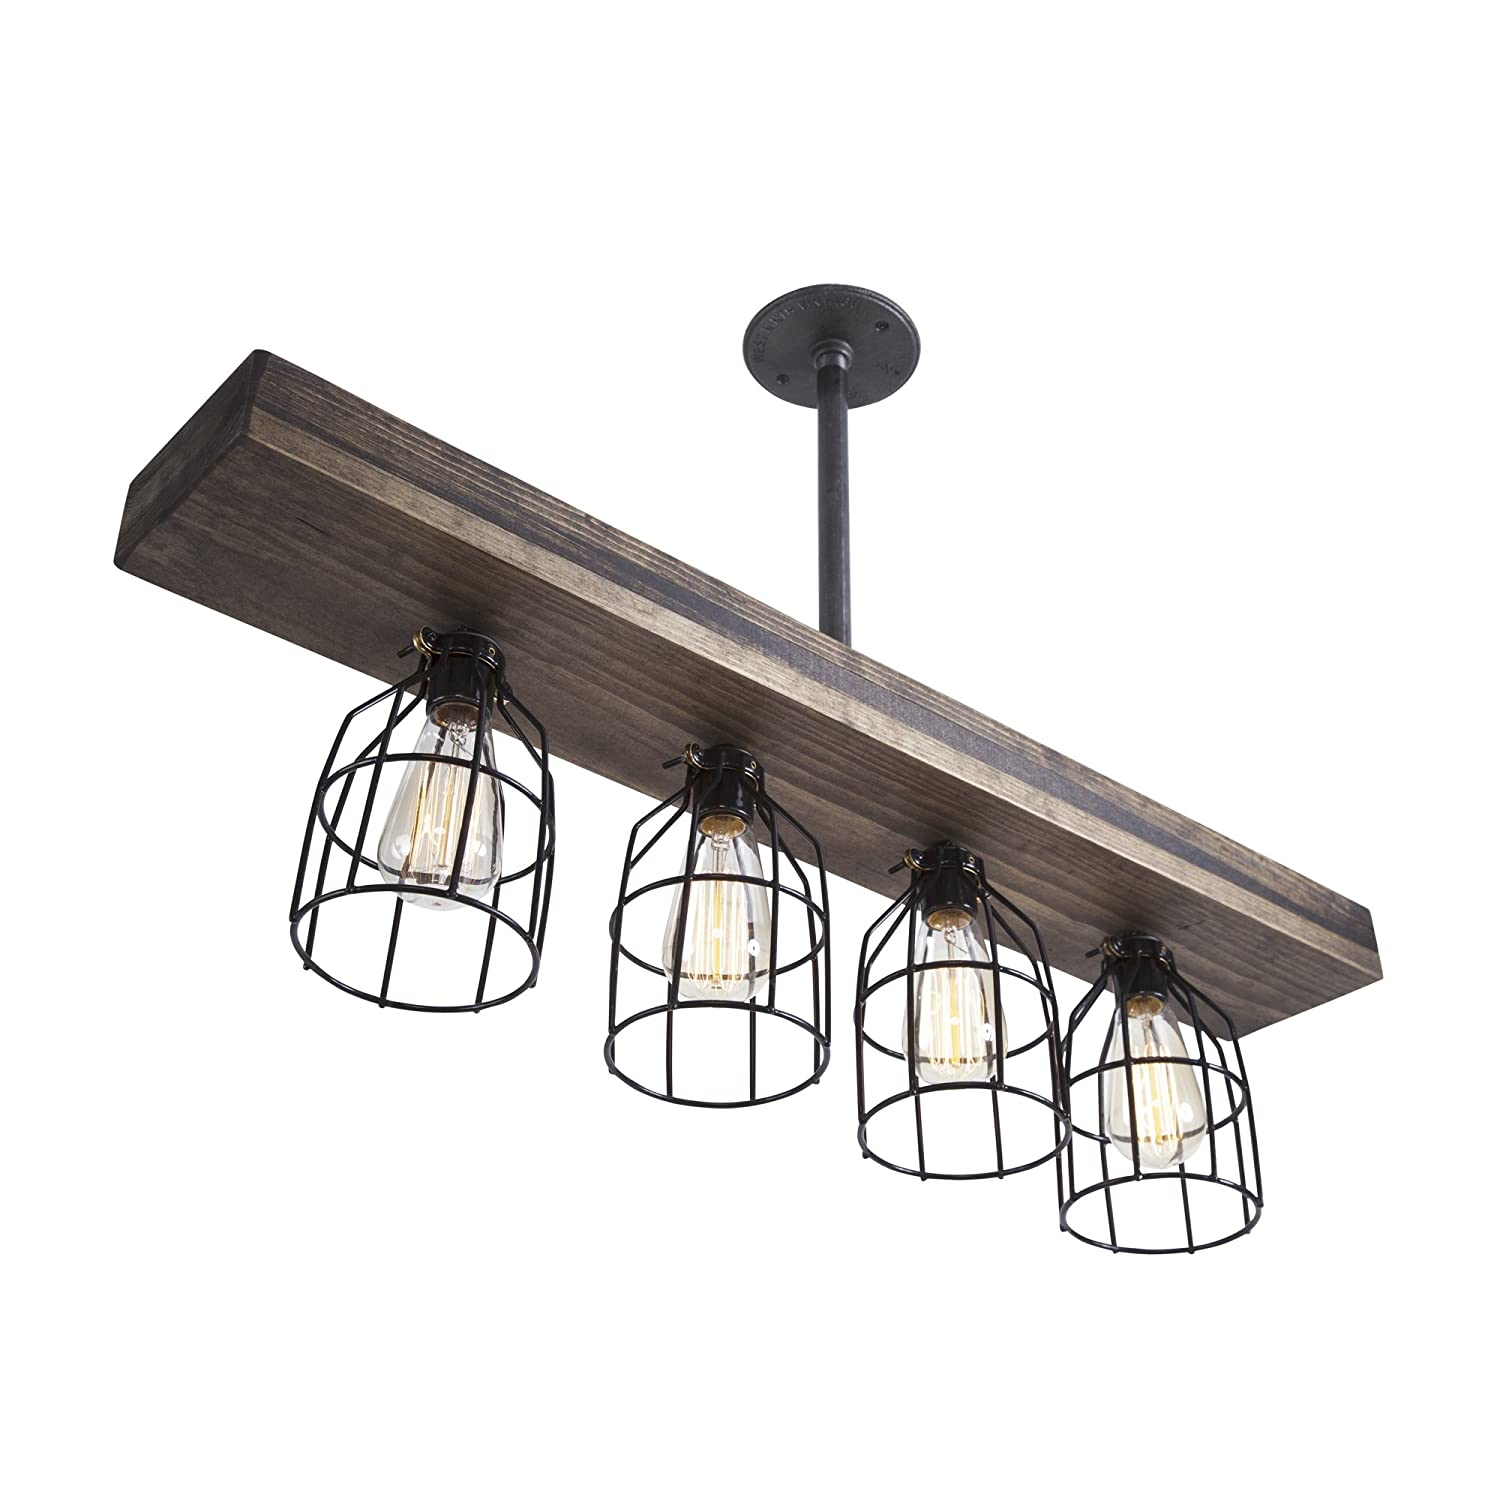 West Ninth Vintage Pendant Farmhouse Chandelier Fixture | Fayette Triple Wood Beam Light Mixed With Stained Wood Beam And Metal Light Cages